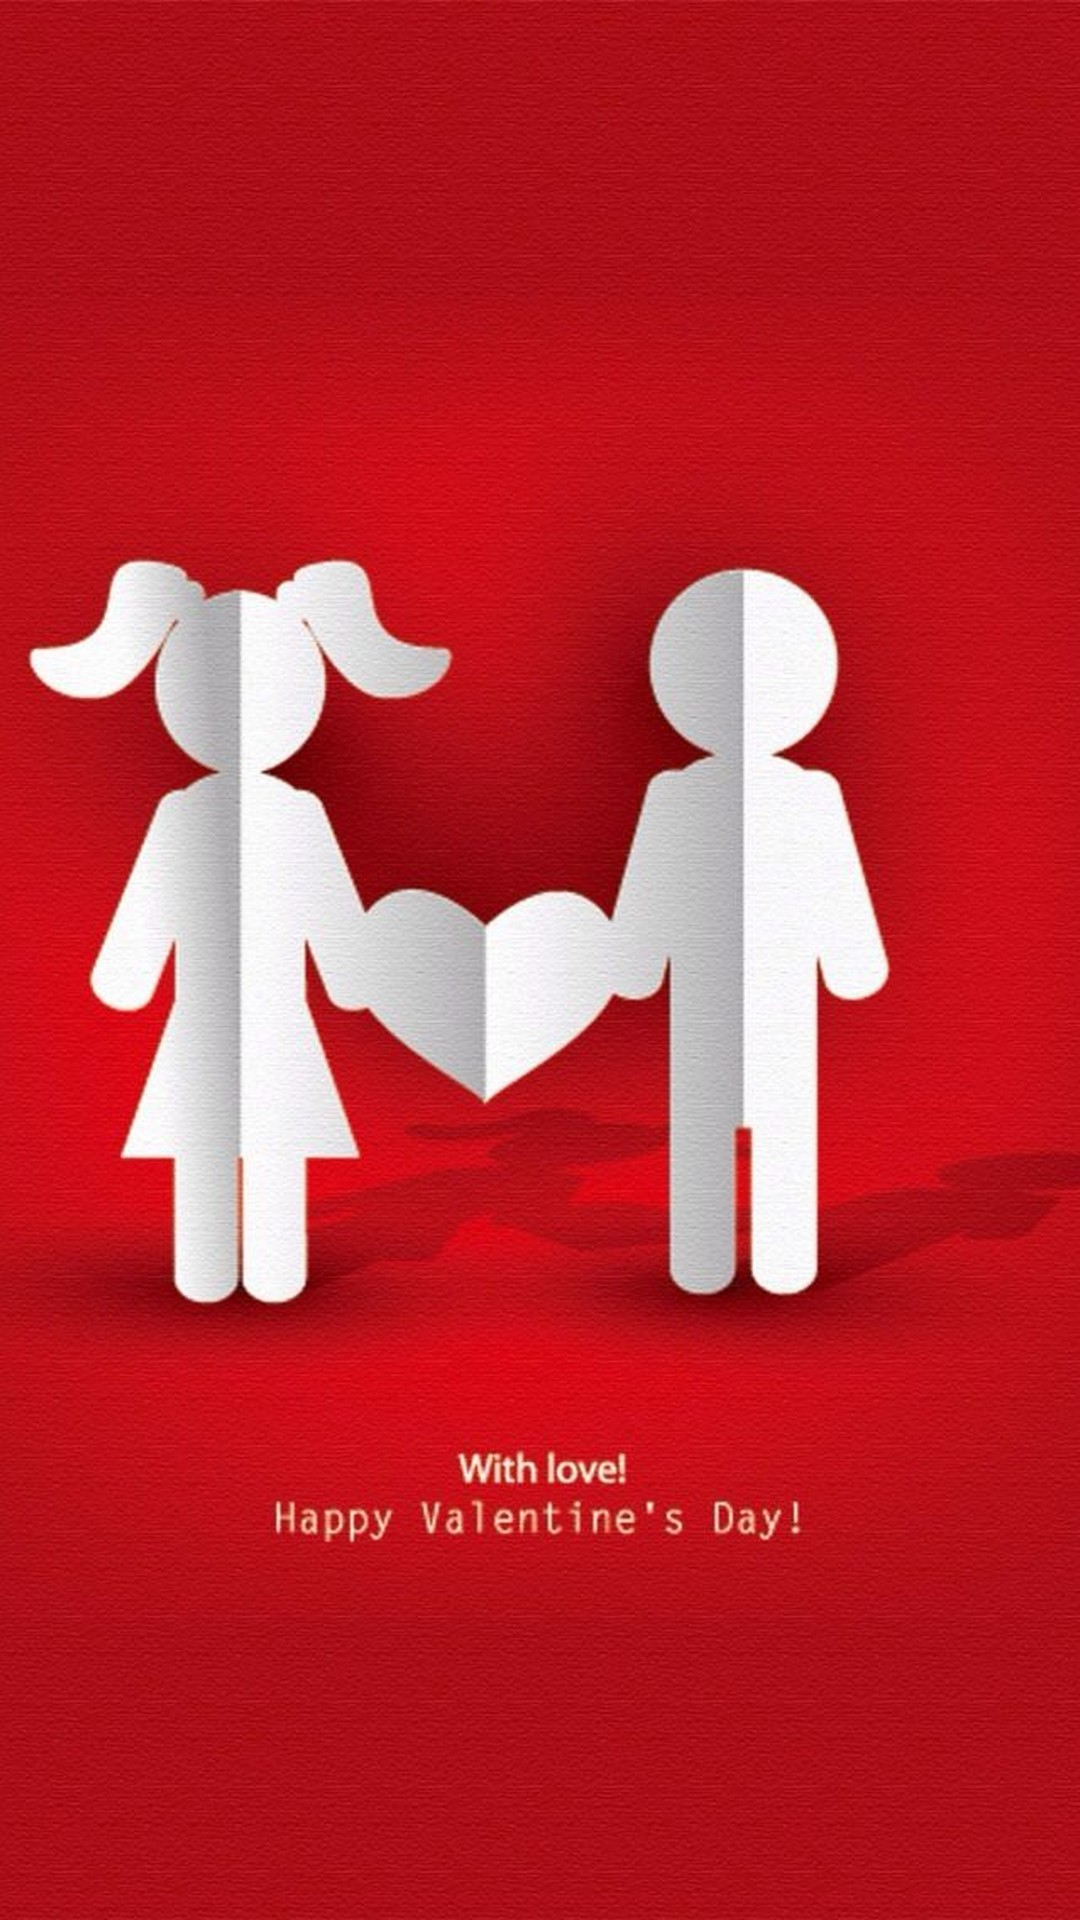 Red Valentine Day iPhone Wallpaper 2021 Cute Wallpapers 1080x1920